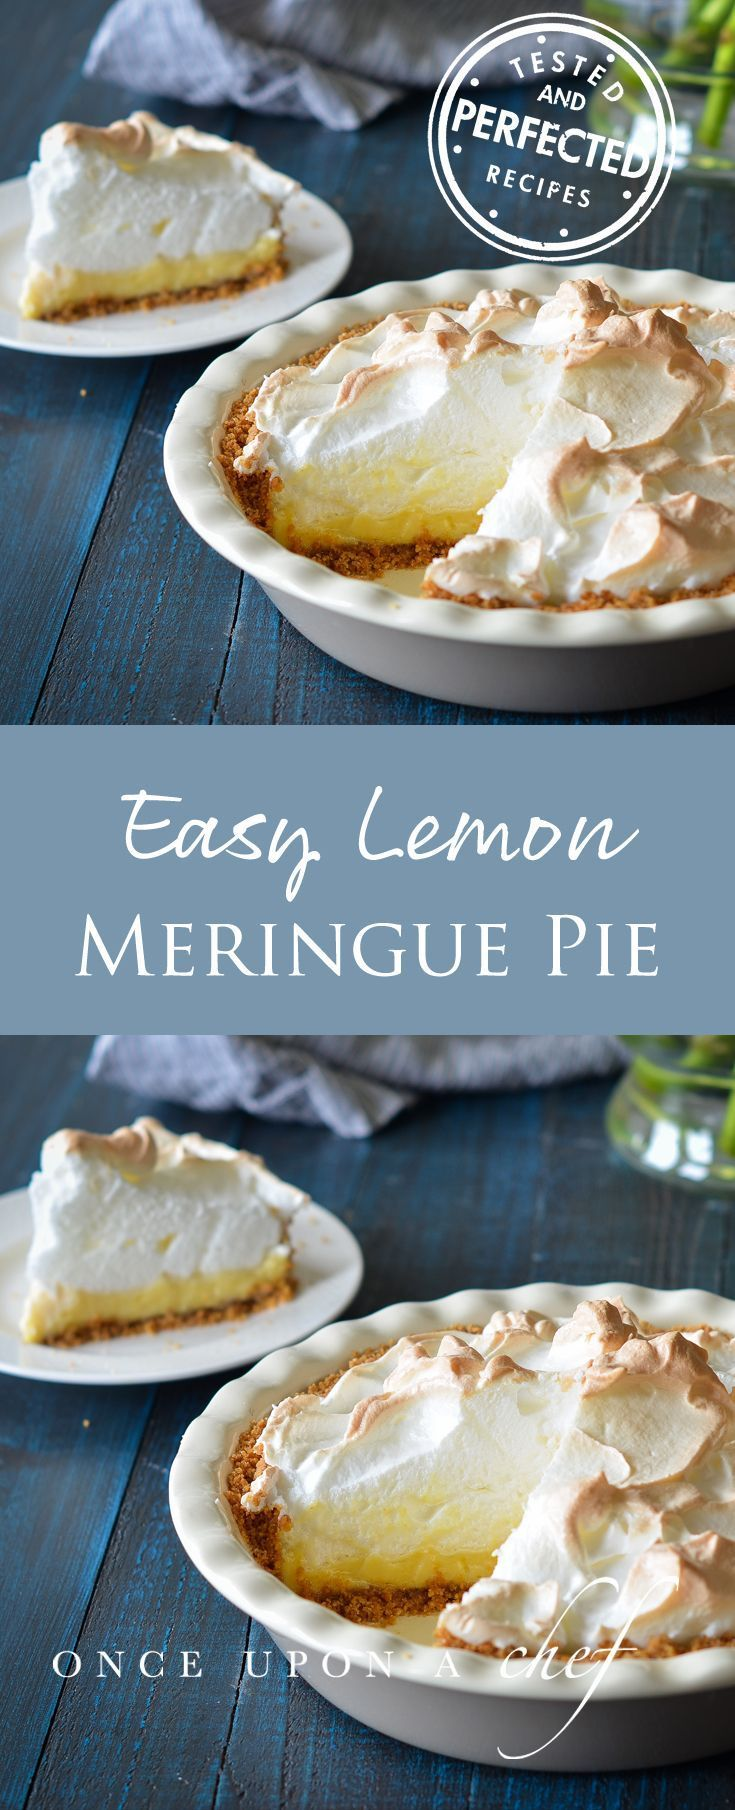 Lemon Meringue Pie Once Upon A Chef Recipe Lemon Meringue Pie Easy Meringue Pie Recipes Best Lemon Meringue Pie